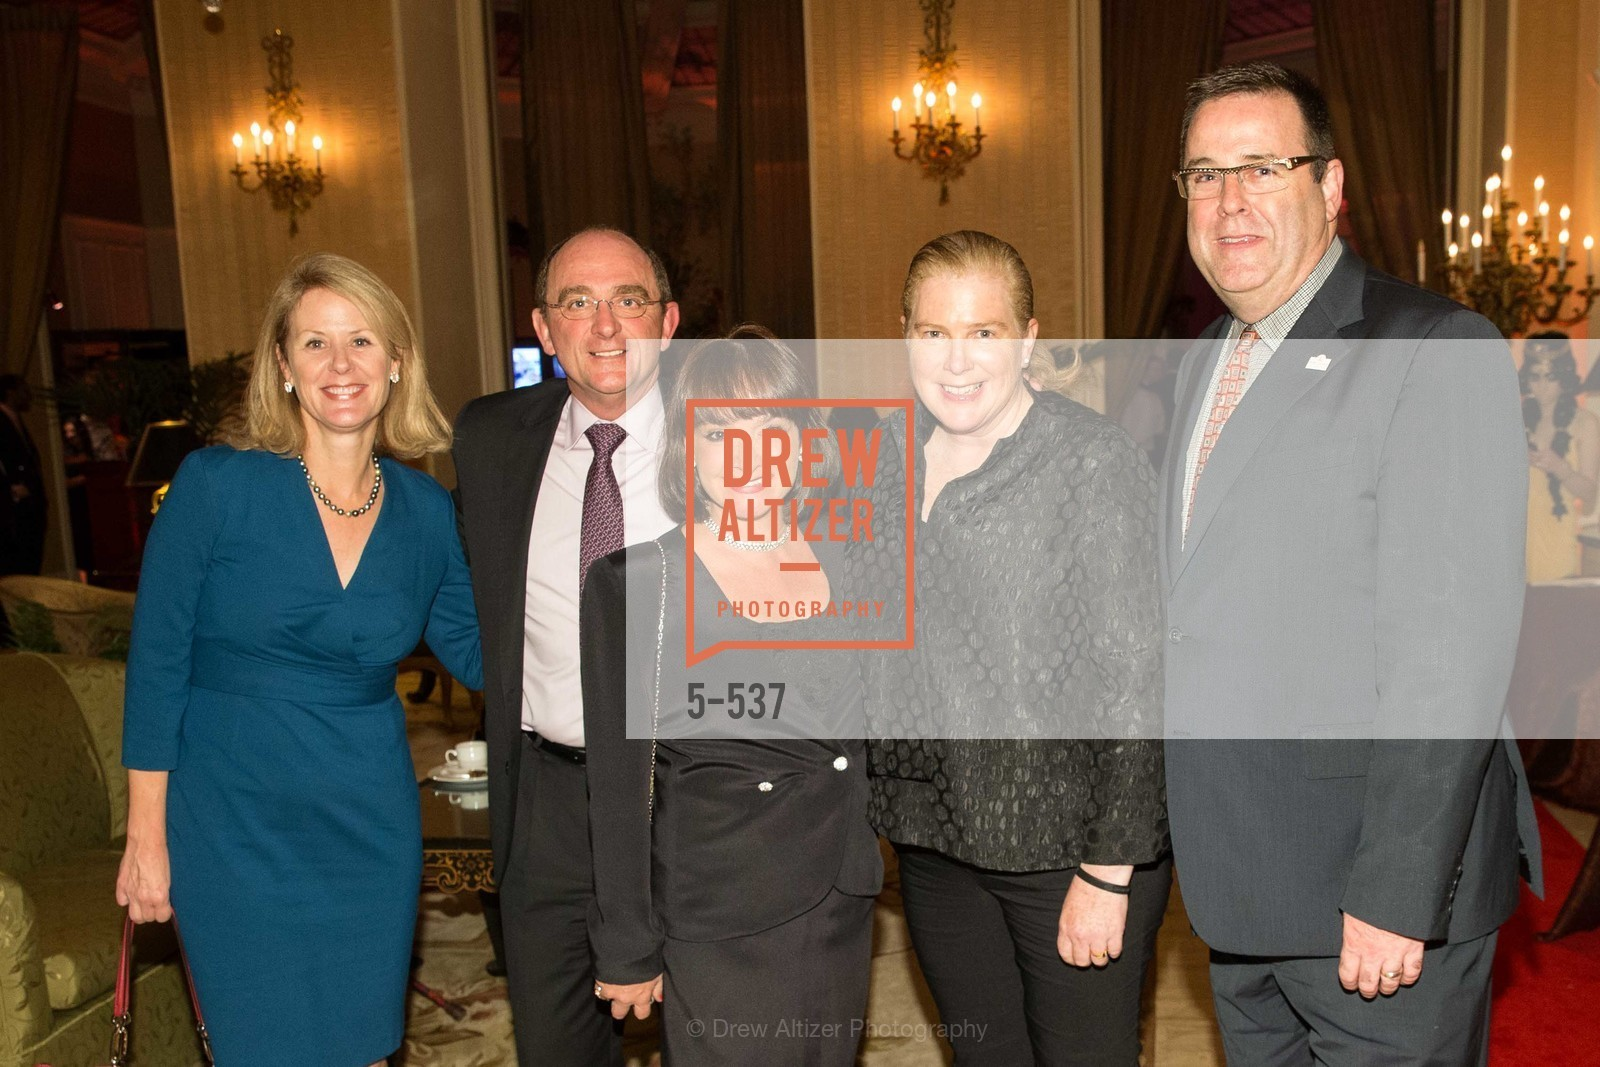 Kelly Powers, Tom Klein, Barbara Klein, Joanne Hayes-White, Kevin Carroll, TOP OF THE MARK'S 75TH Anniversary Party, US, November 6th, 2014,Drew Altizer, Drew Altizer Photography, full-service agency, private events, San Francisco photographer, photographer california